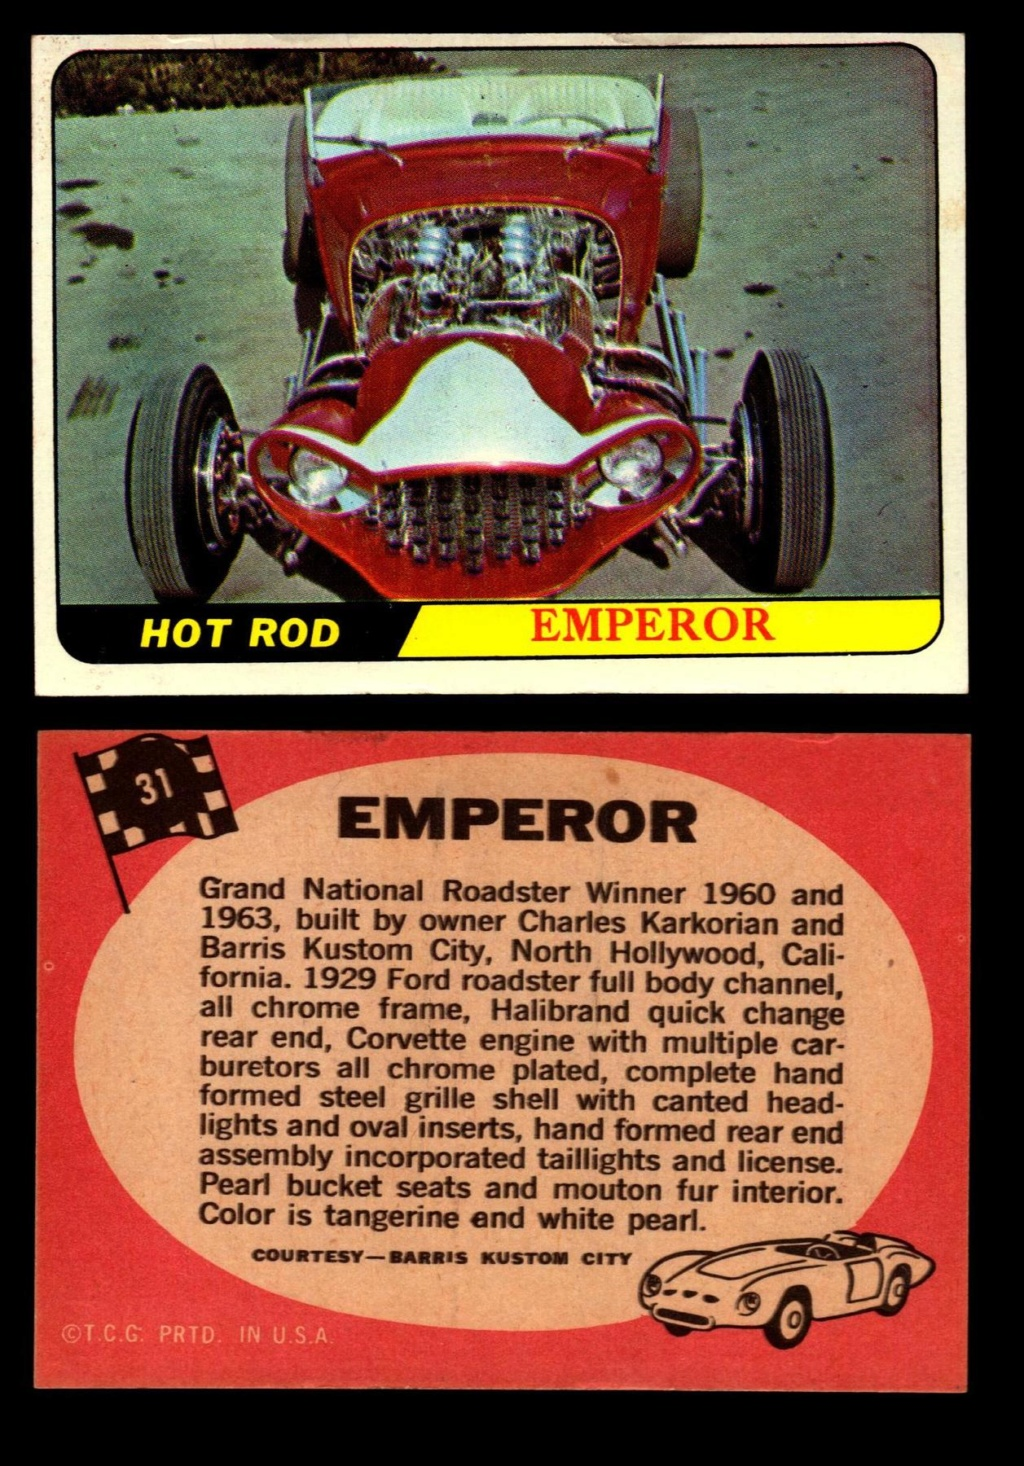 Hot Rods Topps - Vintage Trading Cards 1968 - Custom car - Dragster - Racer - Dream car - Barris Kustom City - Ed Roth Darrill Starbird, Gene Winfield, Bill Cuchenberry - Page 2 31_07c10